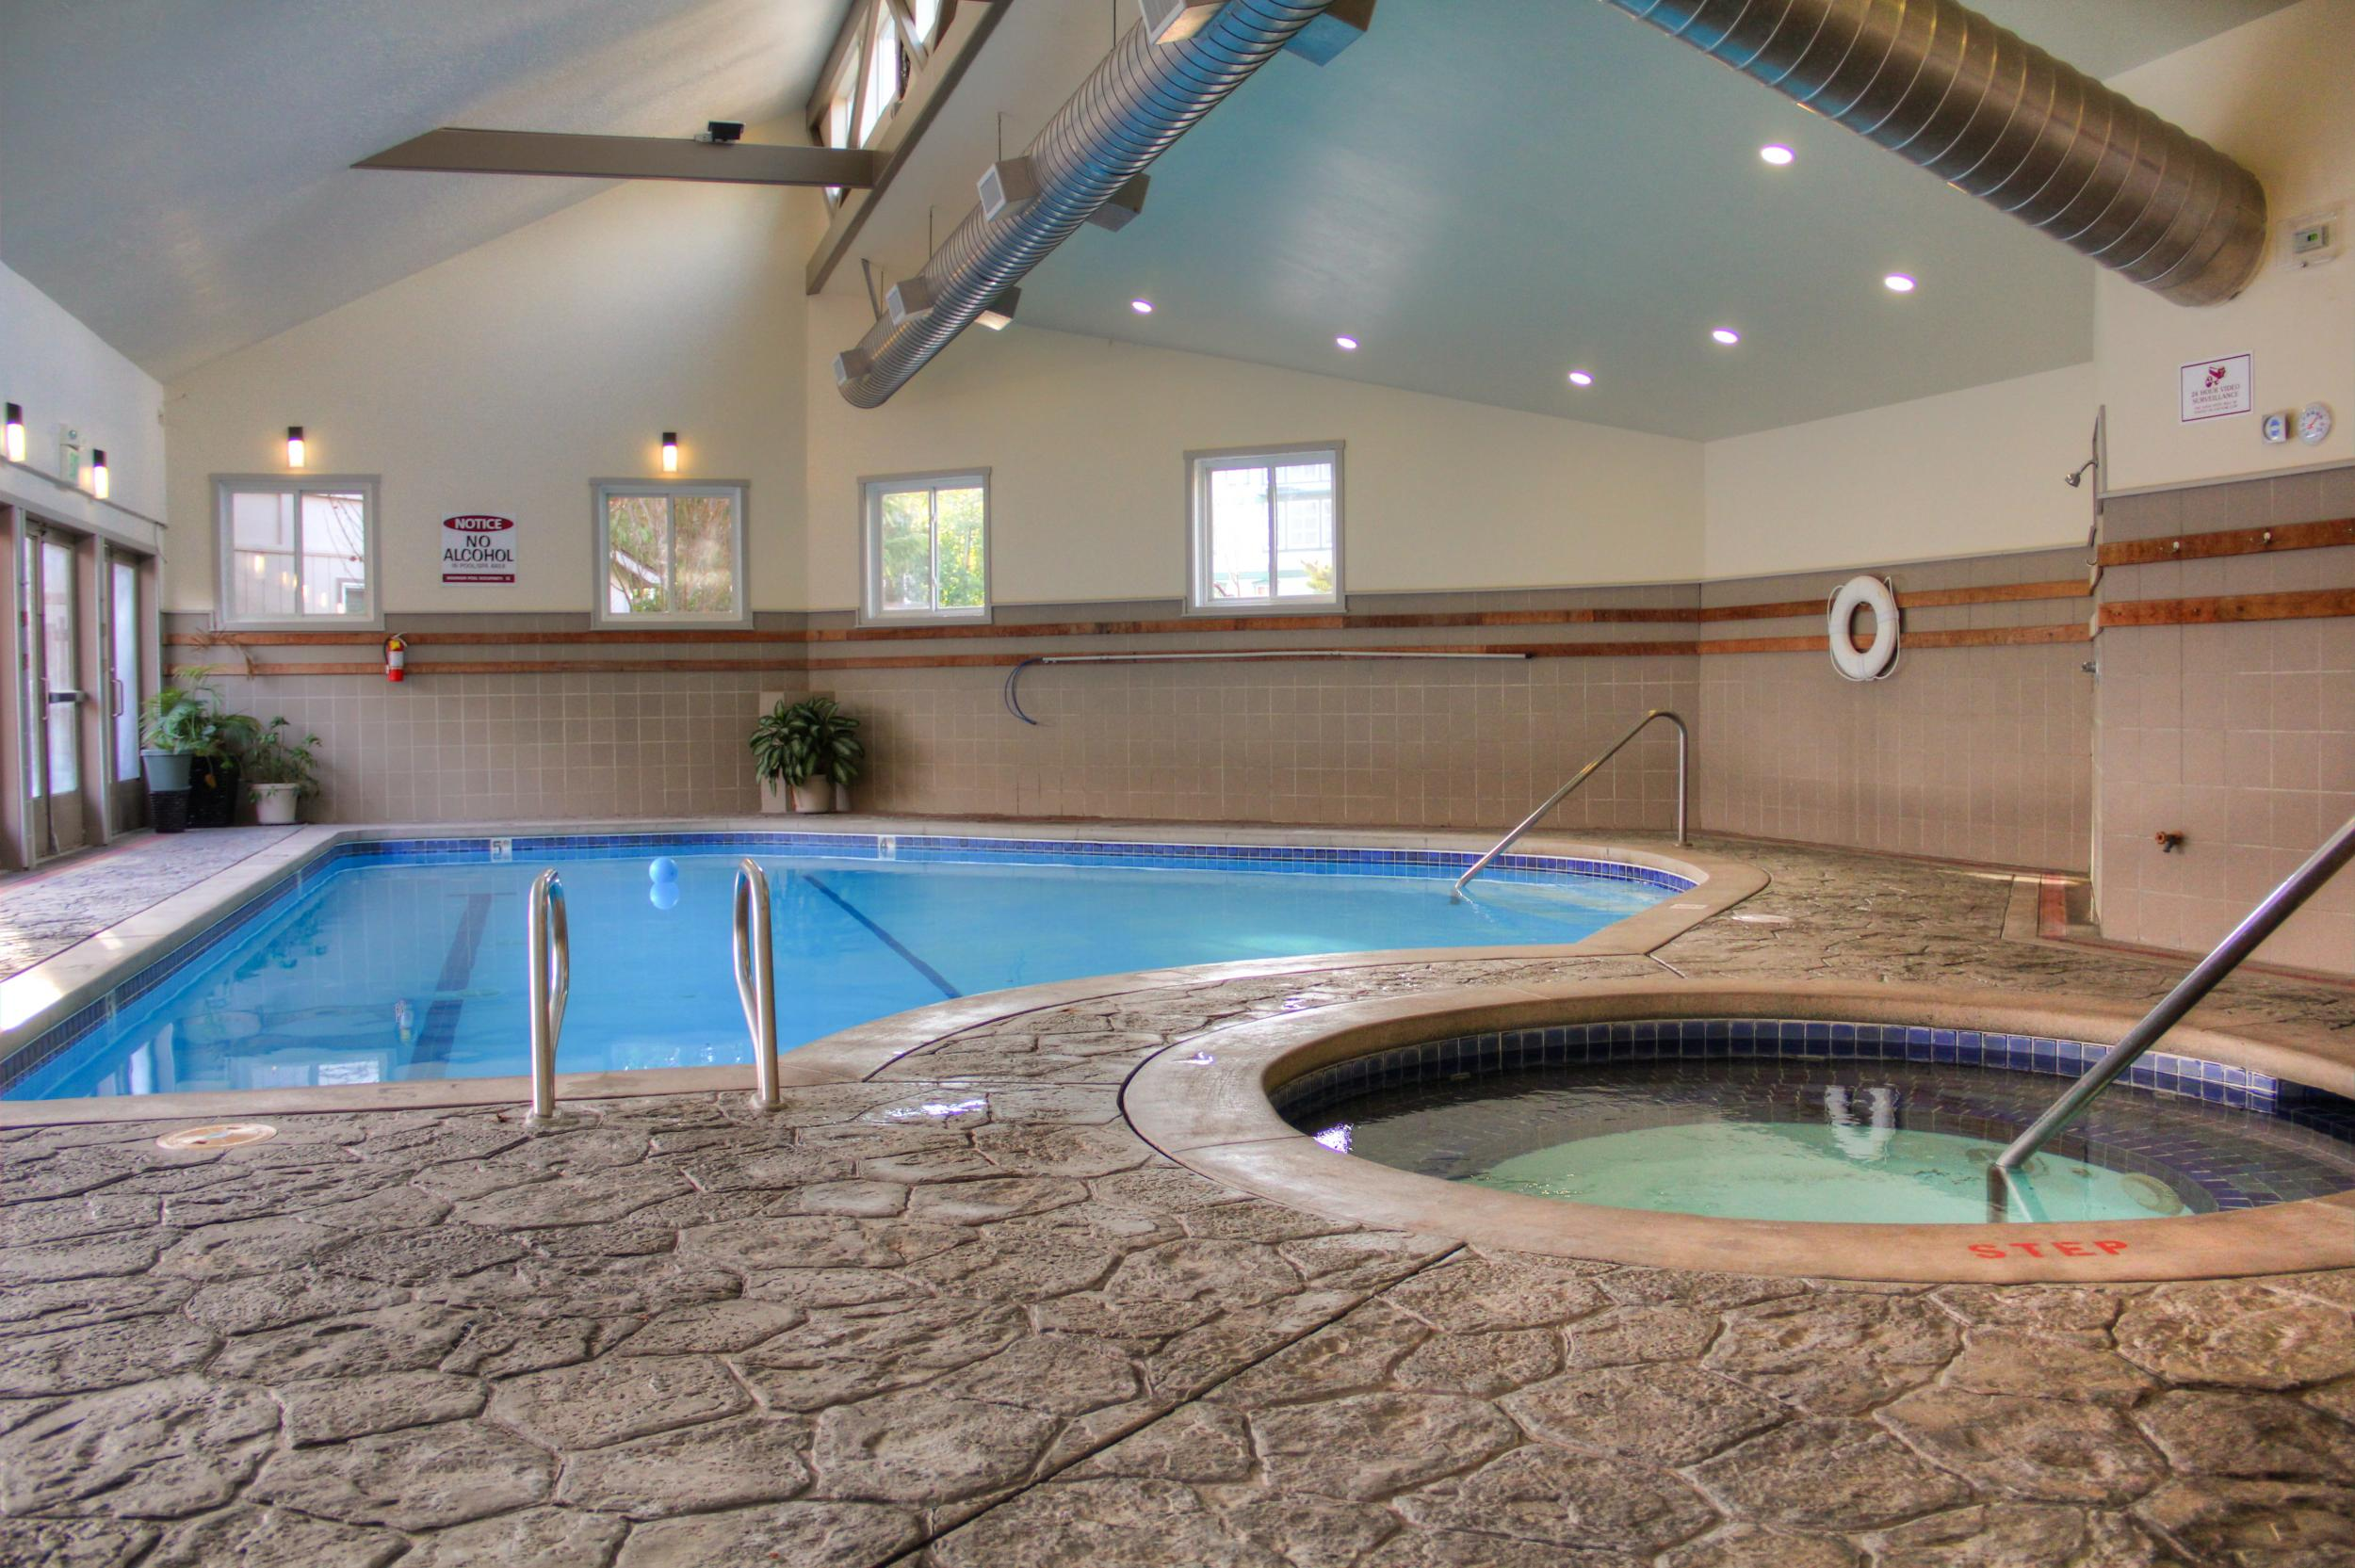 Jacuzzi In Pool San Juan Island Hotel With An Indoor Pool Friday Harbor